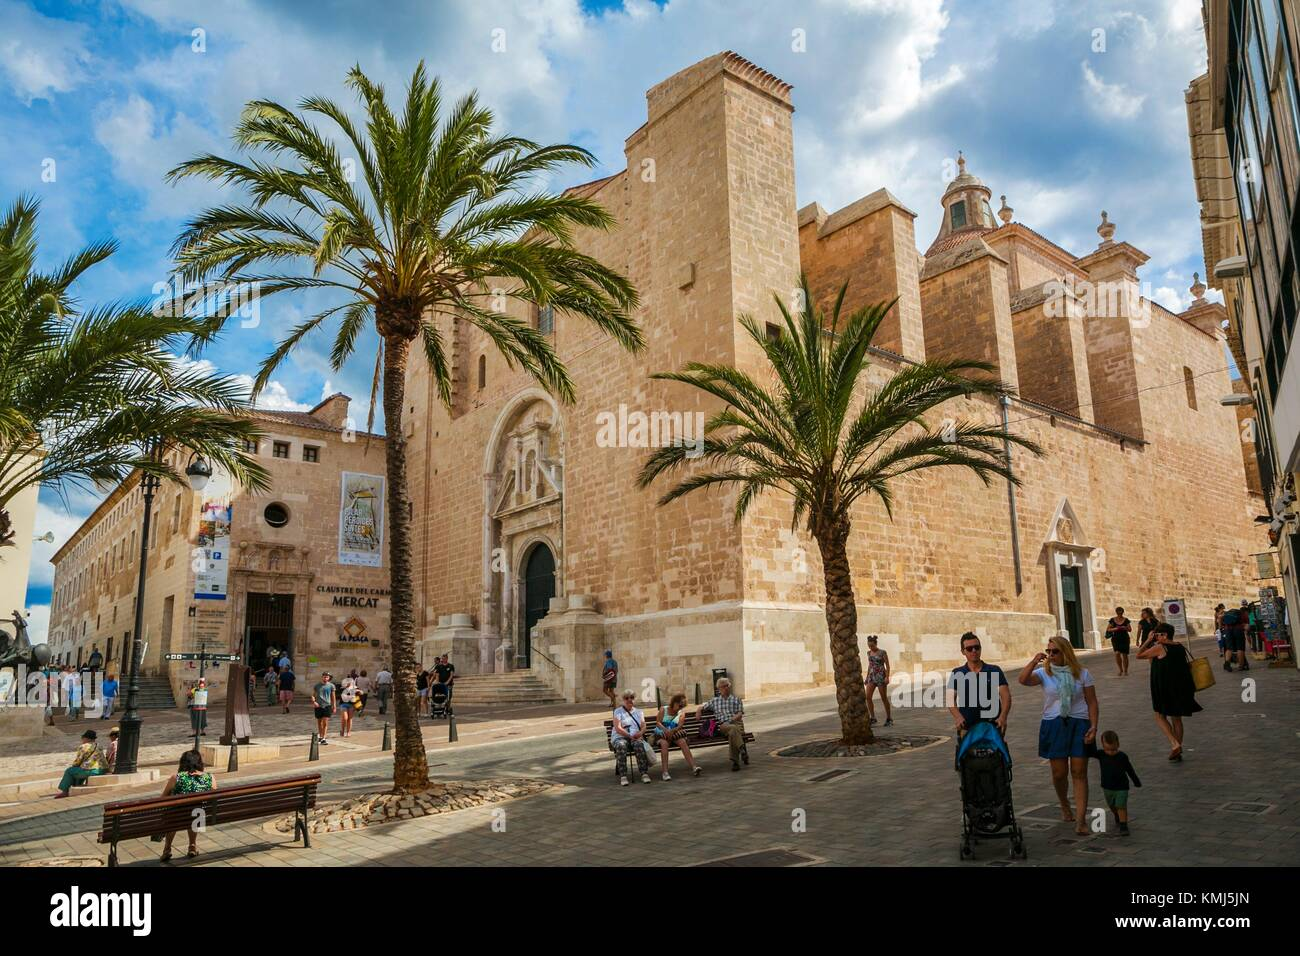 Mare de Deu del Carmen Church. Mahon City. Maó Municipality. Menorca Island. Balearic Islands. Spain - Stock Image